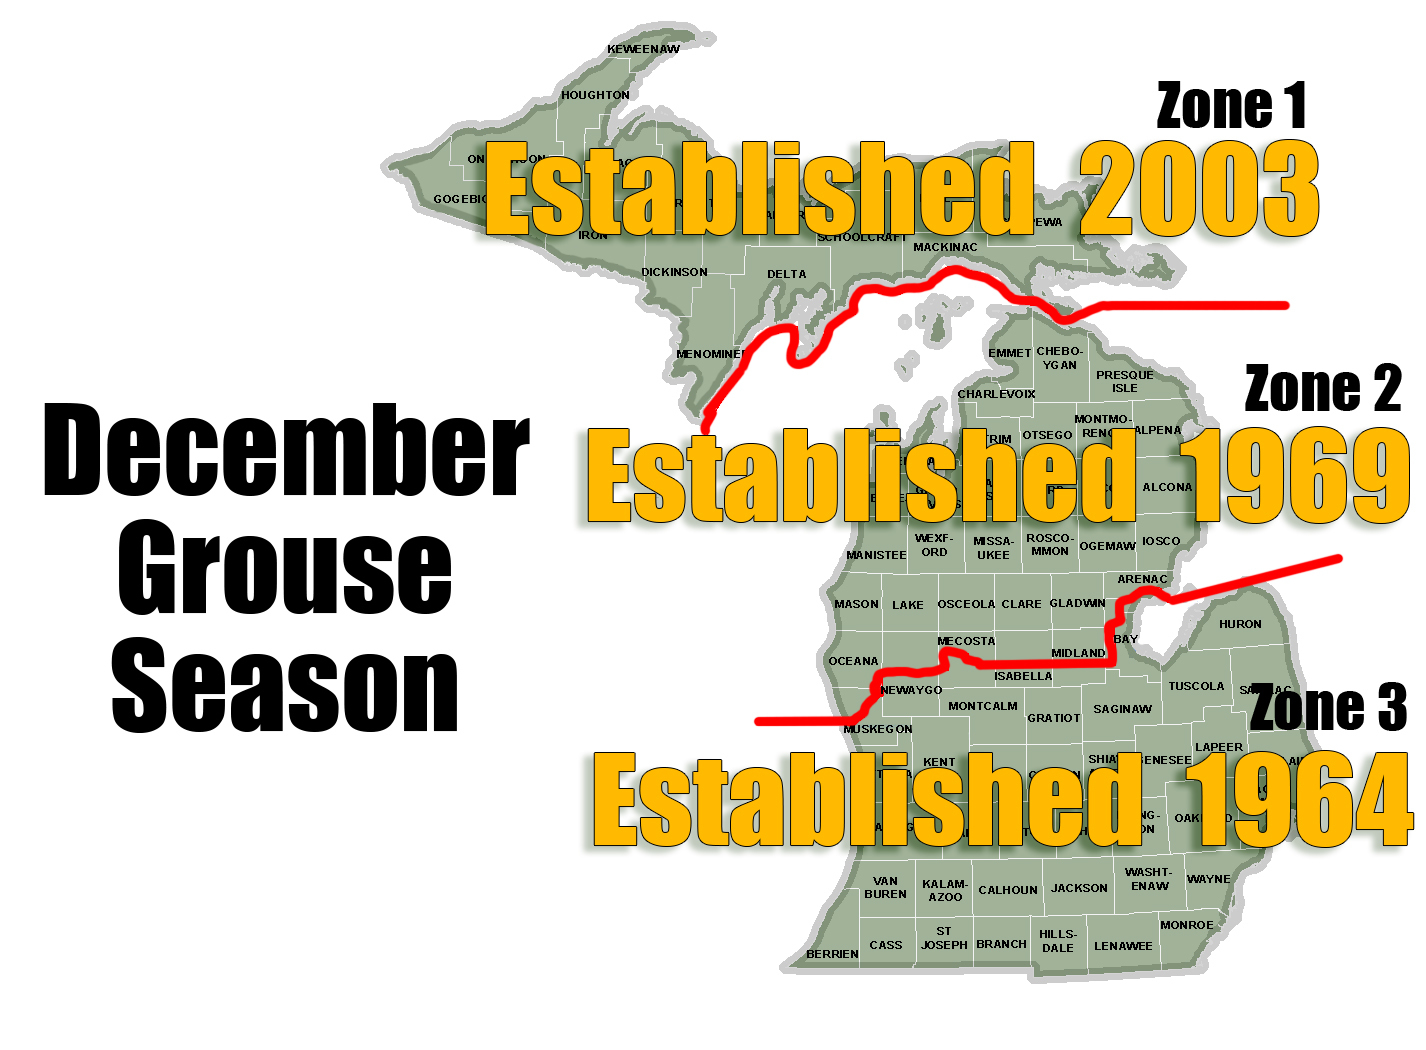 Michigan's December grouse hunting season was established by zone.